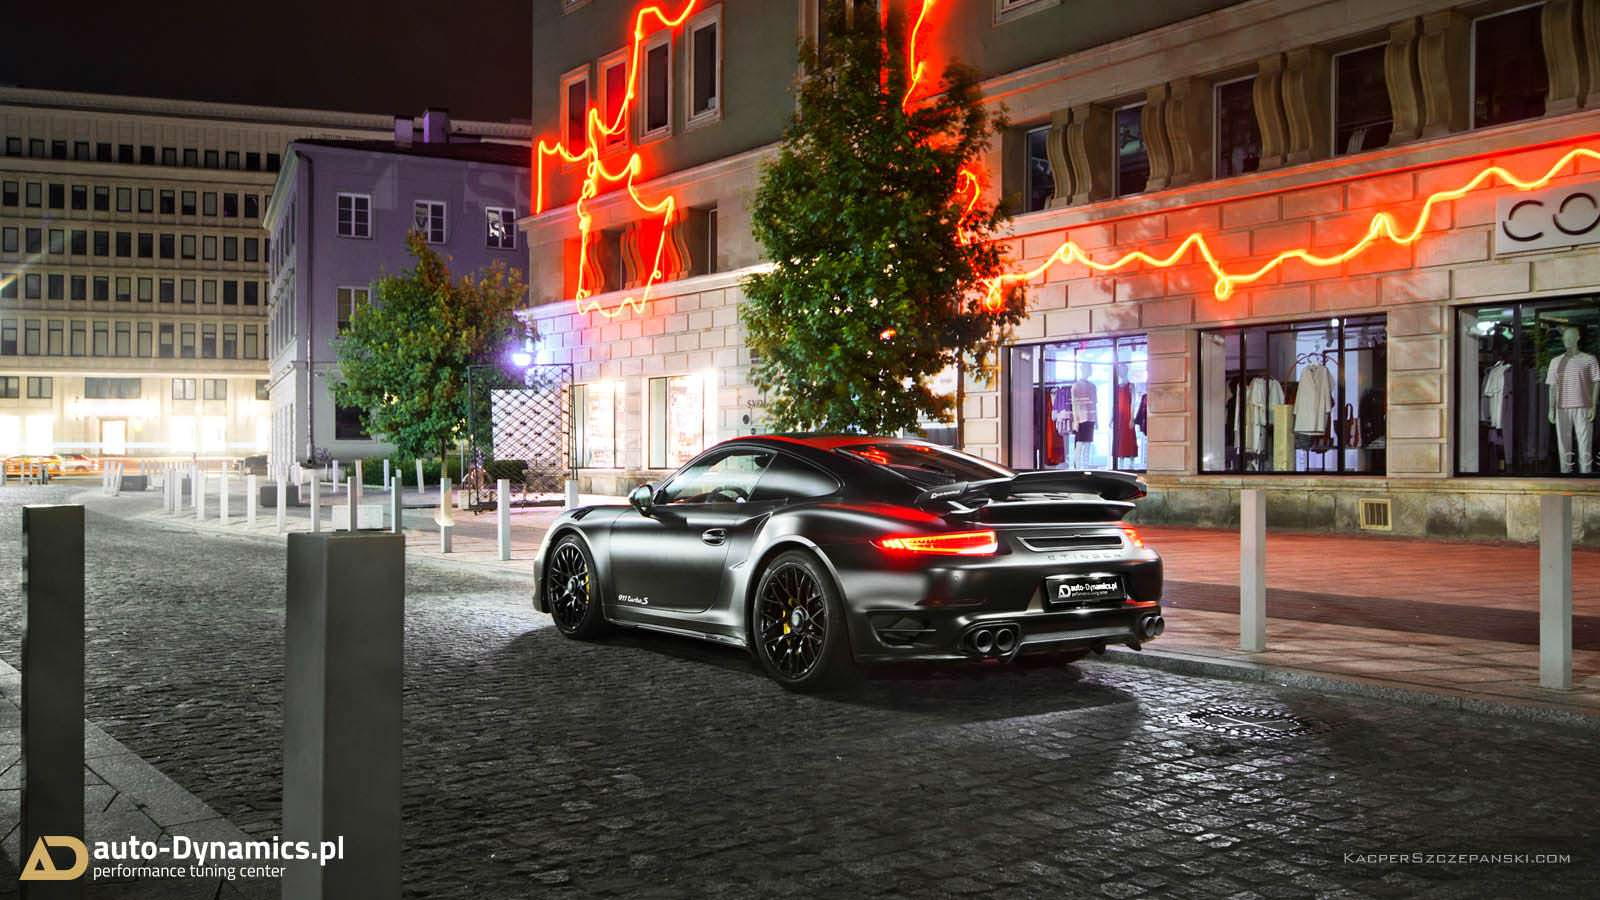 Dark Knight 911 Turbo S ответ Porsche 911 GT2 RS